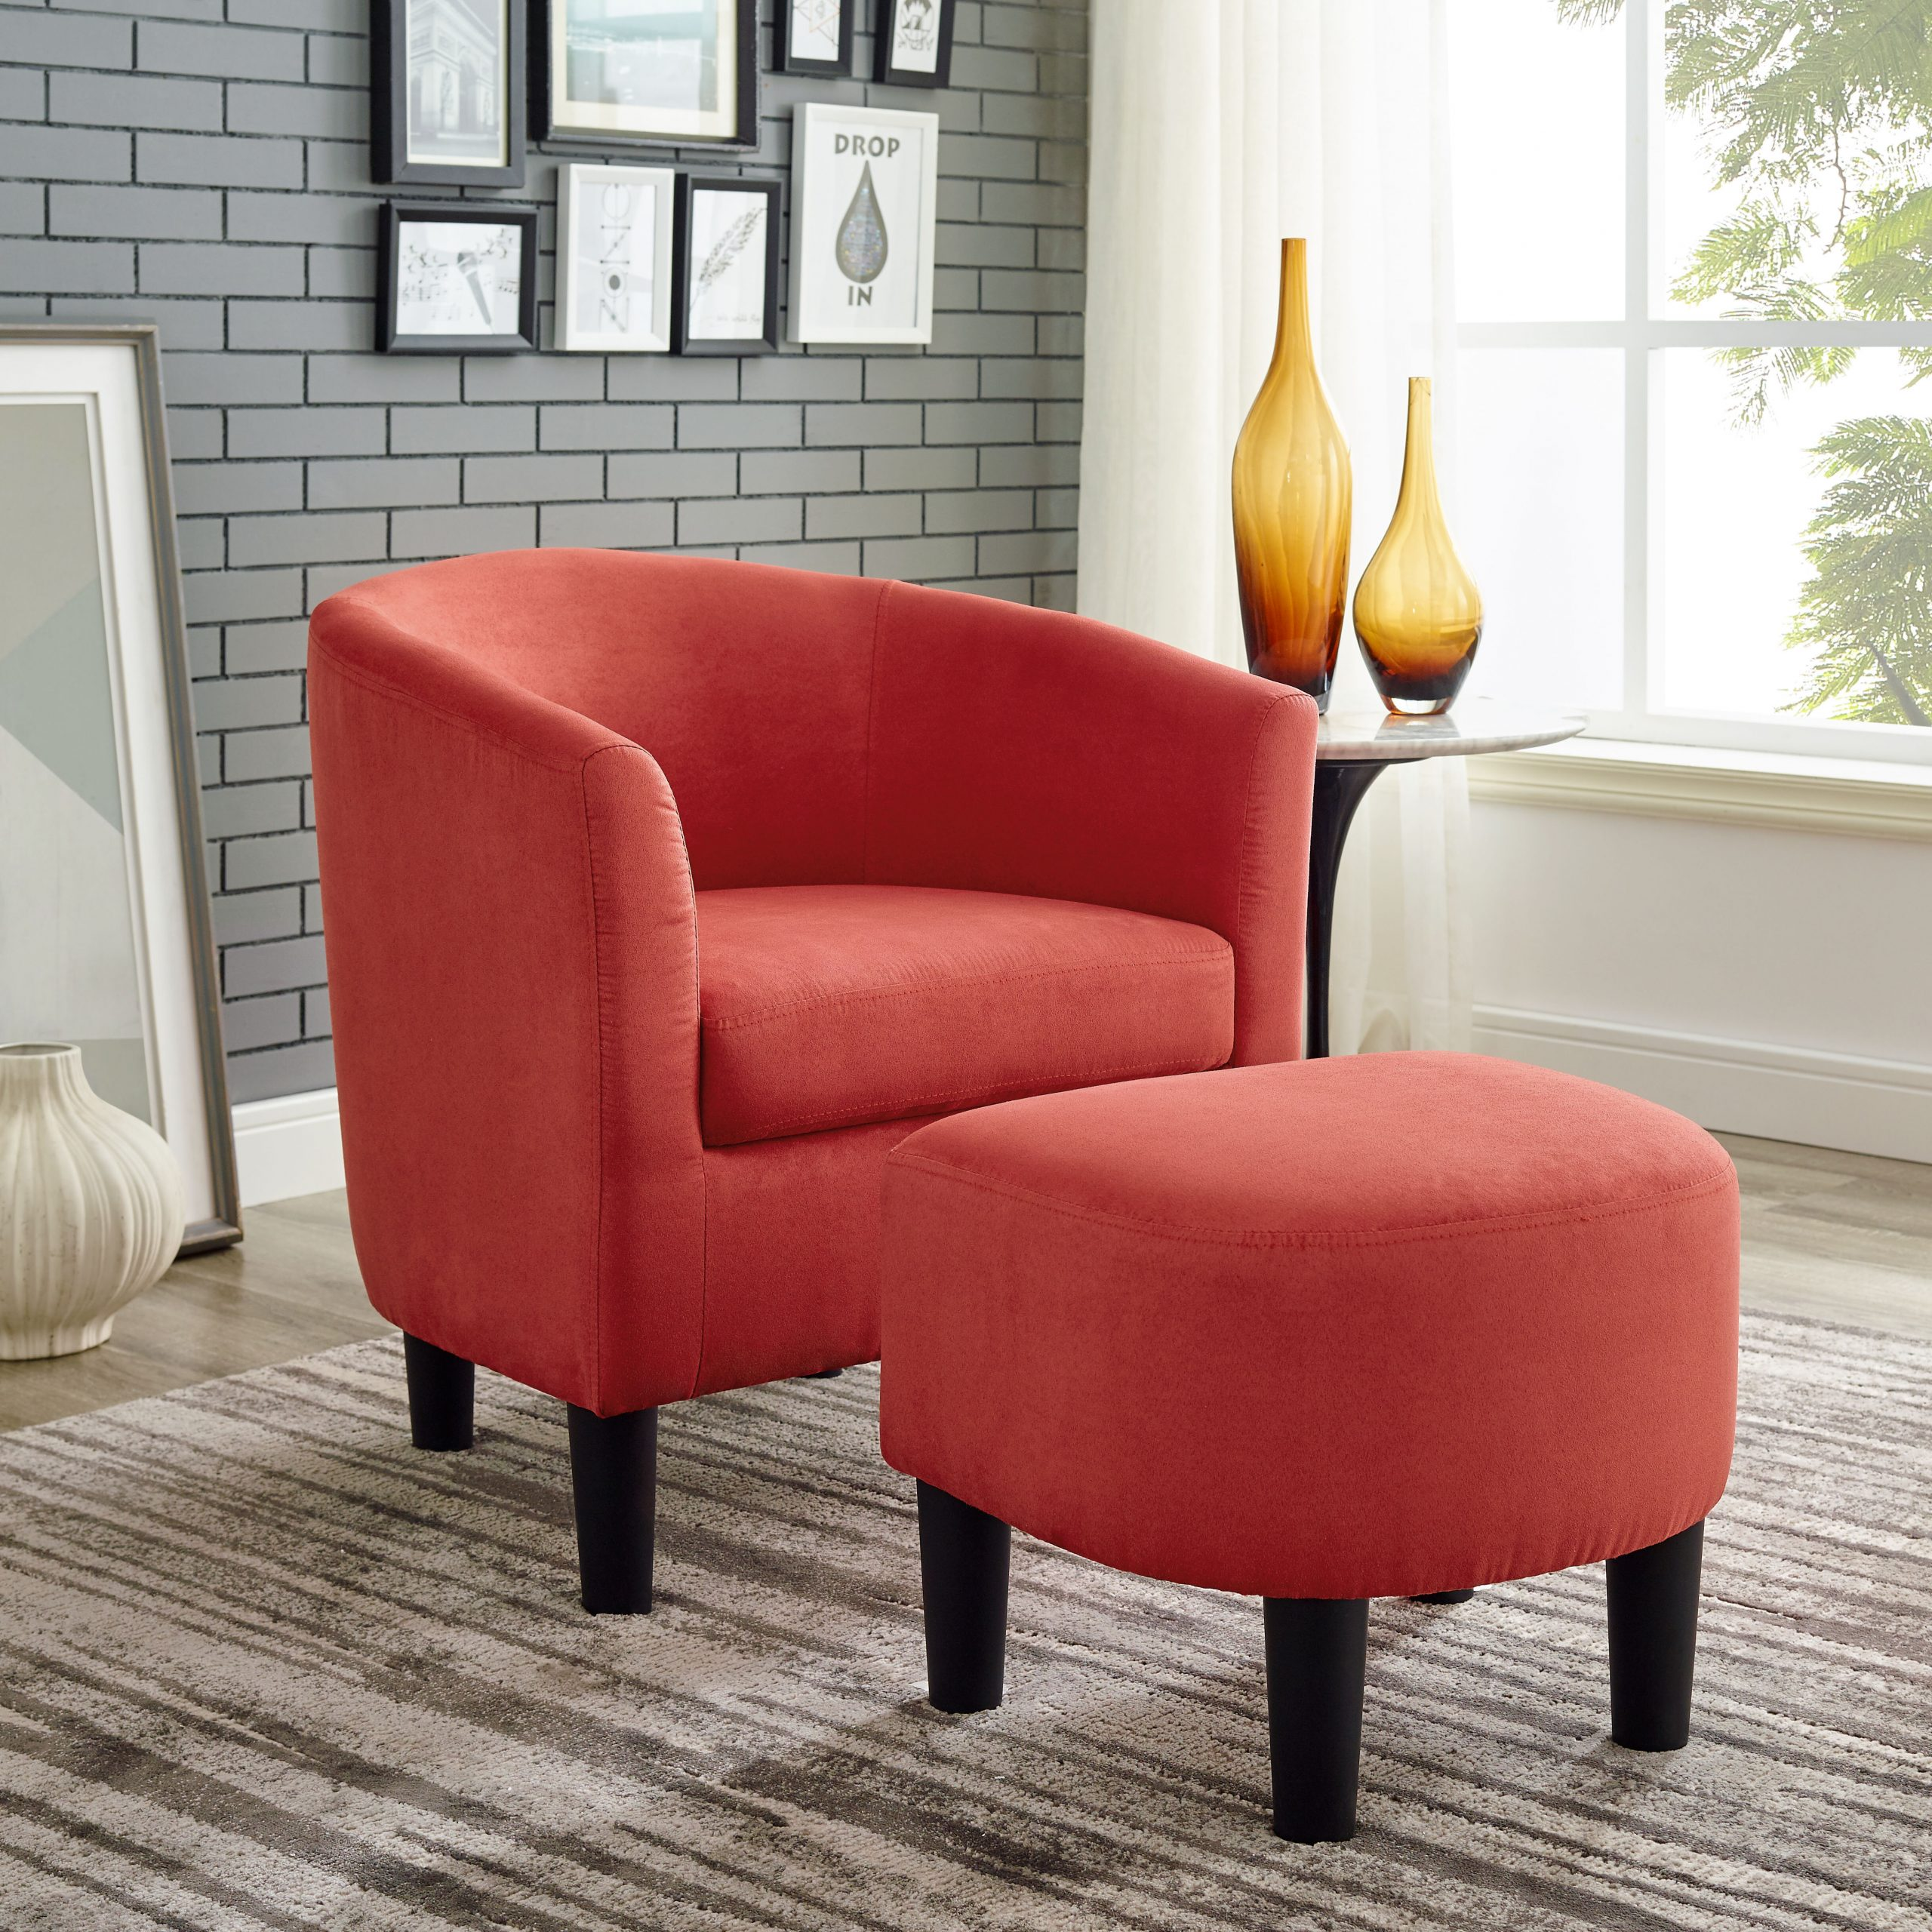 Orange & White Accent Chairs You'Ll Love In 2021   Wayfair Throughout Artemi Barrel Chair And Ottoman Sets (View 5 of 15)